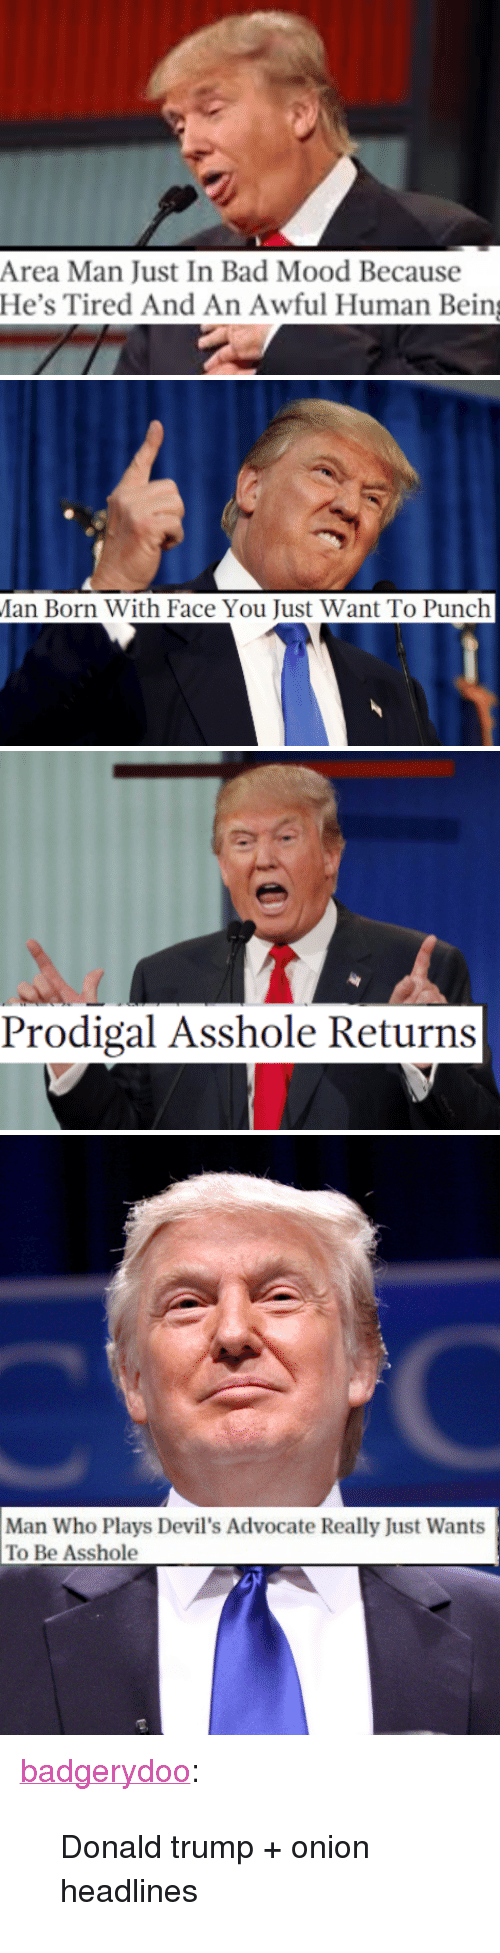 """Donald Trump: Area Man Just In Bad Mood Because  He's Tired And An Awful Human Bein   an Born With Face You Just Want To Punch   Prodigal Asshole Returns   Man Who Plays Devil's Advocate Really Just Wants  To Be Asshole <p><a class=""""tumblr_blog"""" href=""""http://badgerydoo.tumblr.com/post/141055139573"""">badgerydoo</a>:</p> <blockquote> <p>Donald trump + onion headlines</p> </blockquote>"""